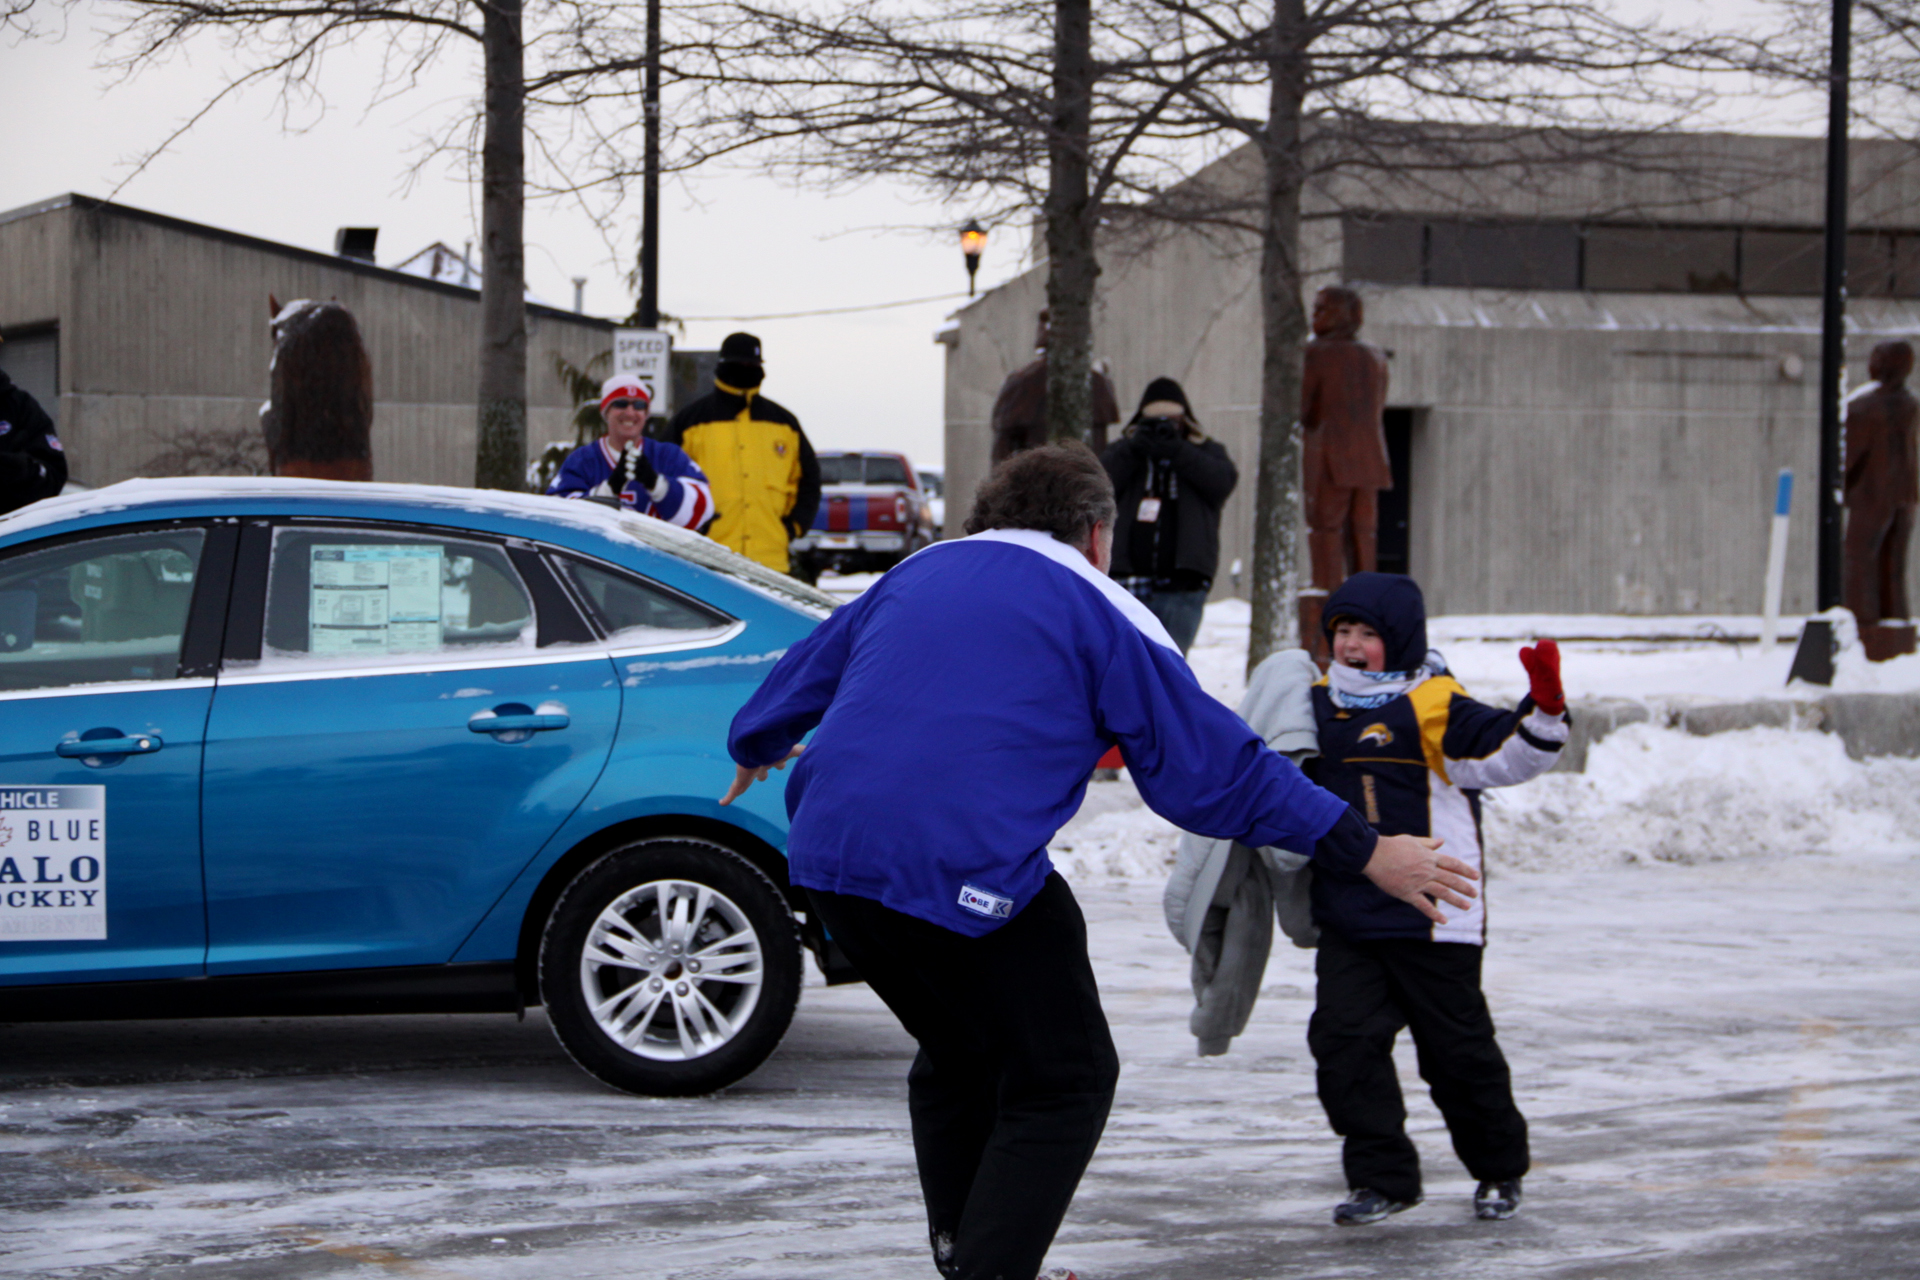 Ford Hockey Shootout winner celebrates with his son after winning a new Ford Focus